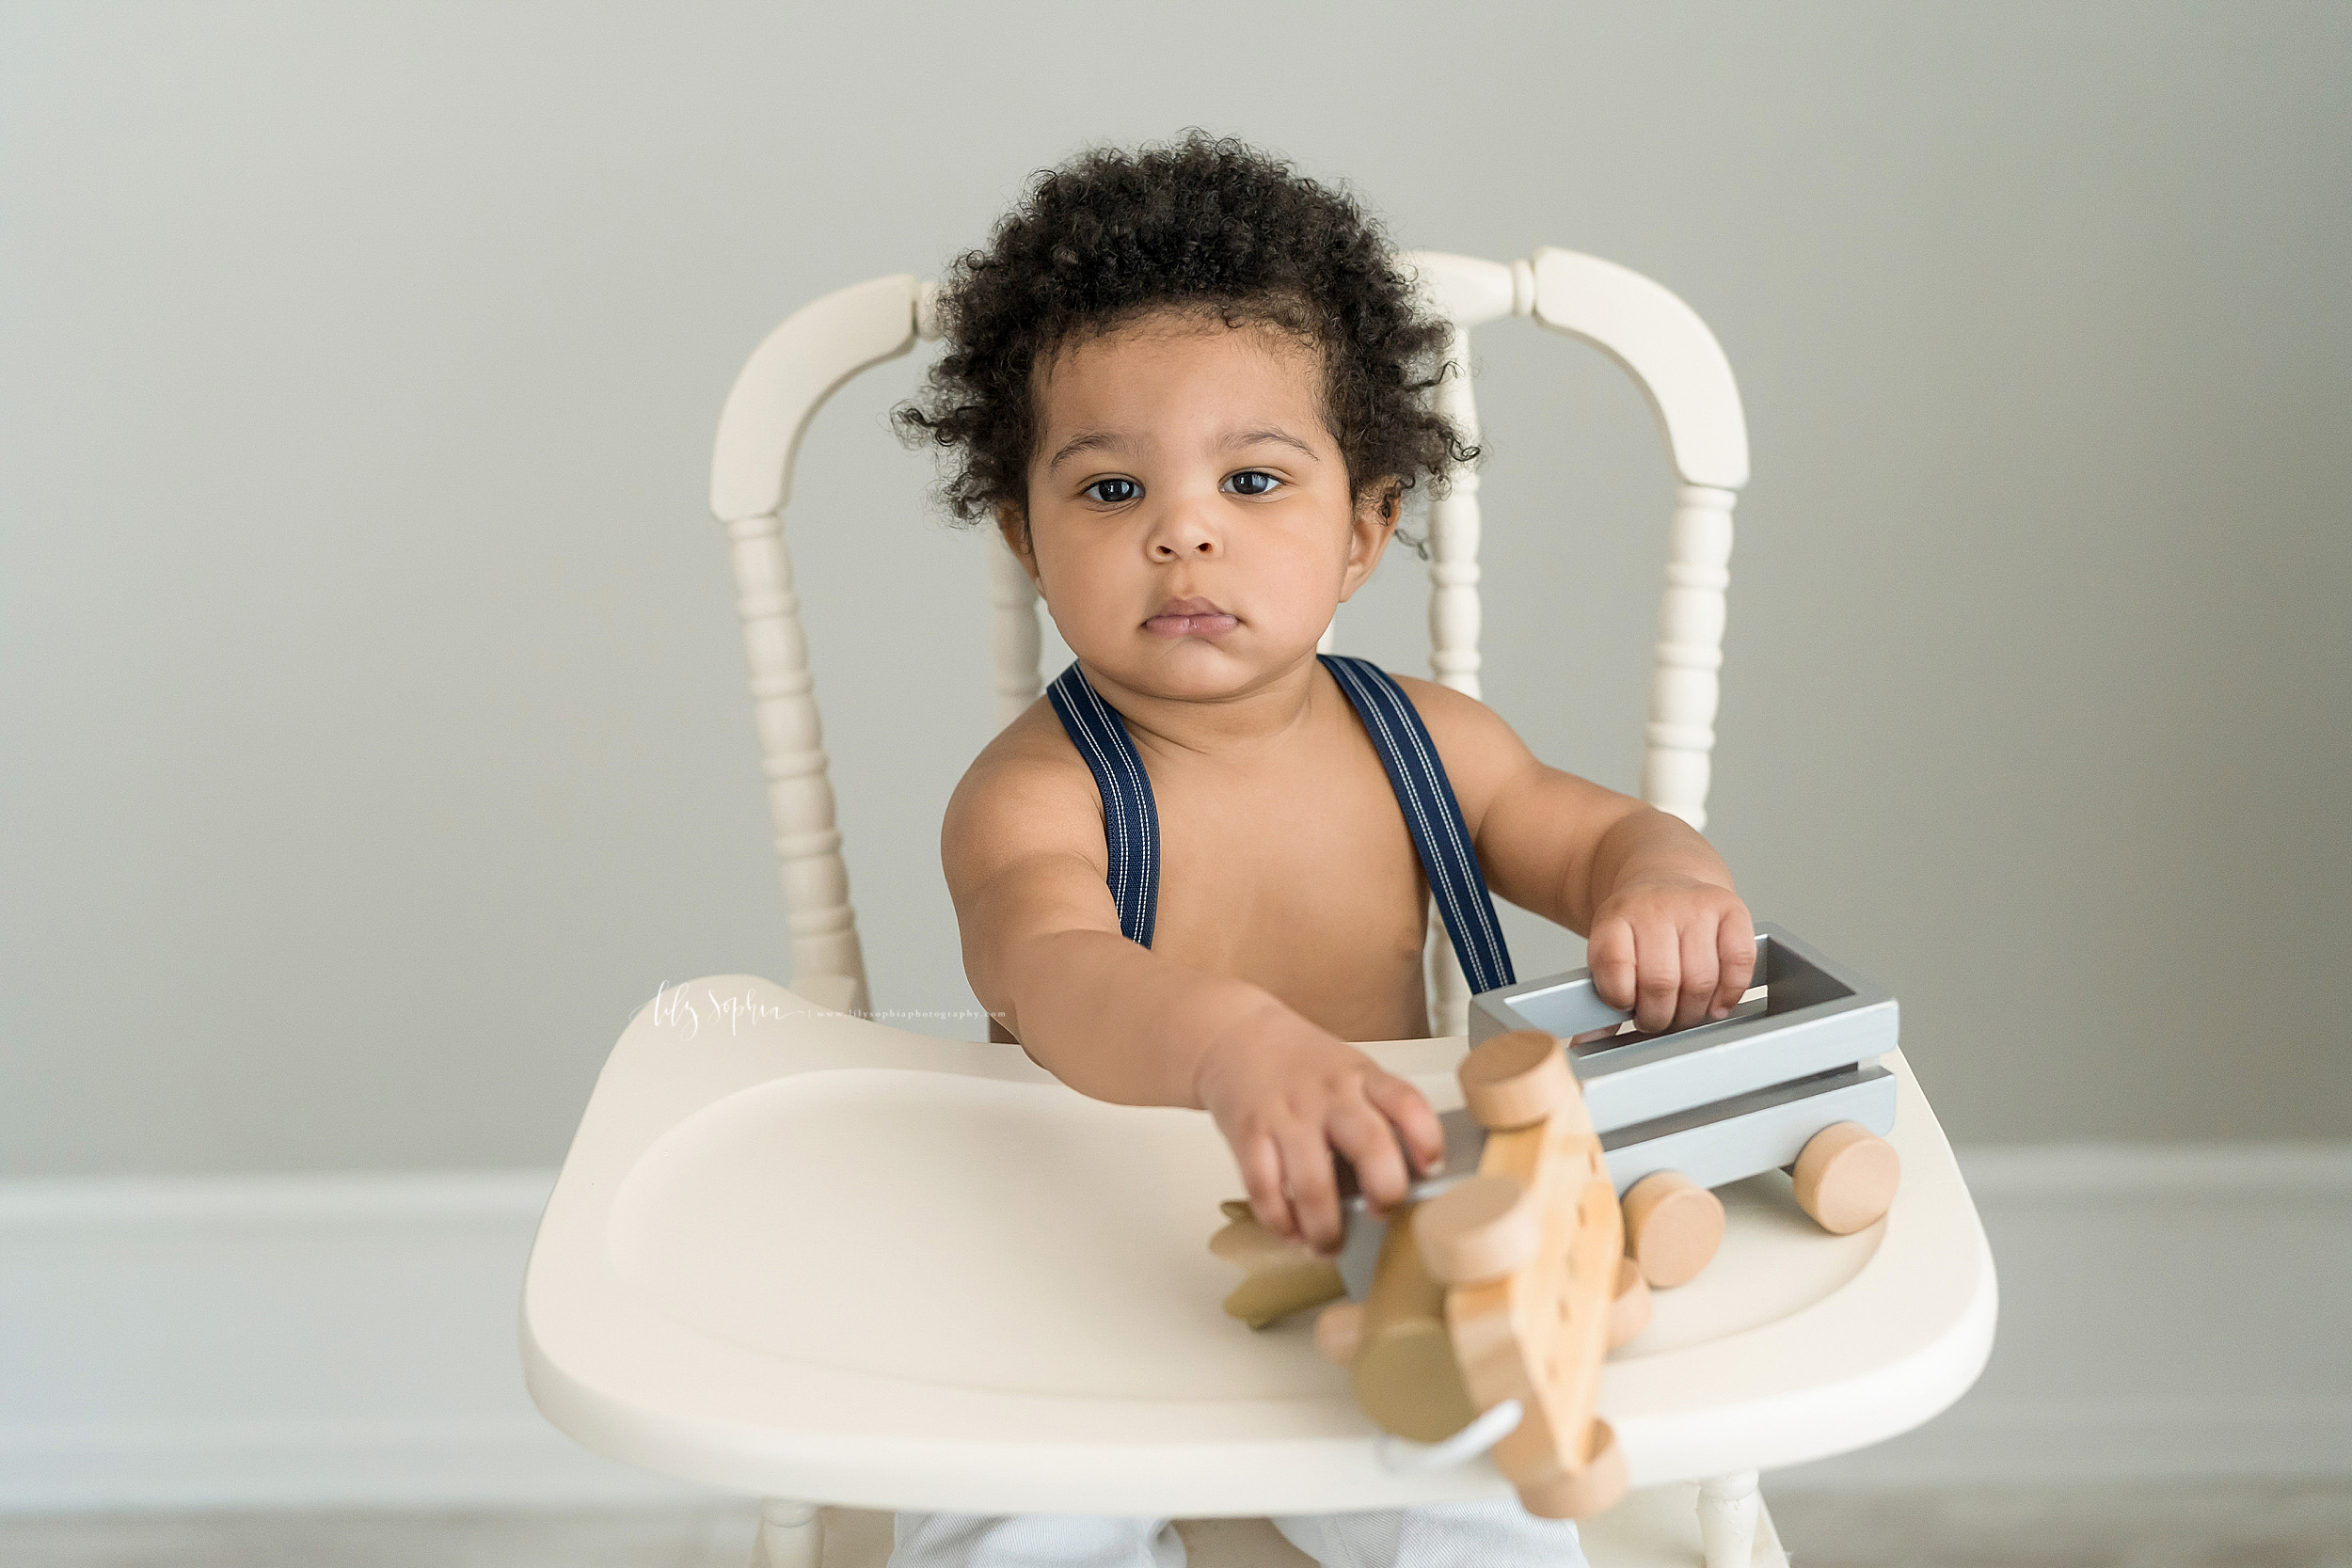 Photograph of an African-American boy with short curly brown hair and bright brown eyes sitting in a cream colored antique high chair. He is bare chested and is wearing blue and white striped suspenders. He has a wooden toy truck that is pulling a pastel blue open flatbed on the tray of the high chair.